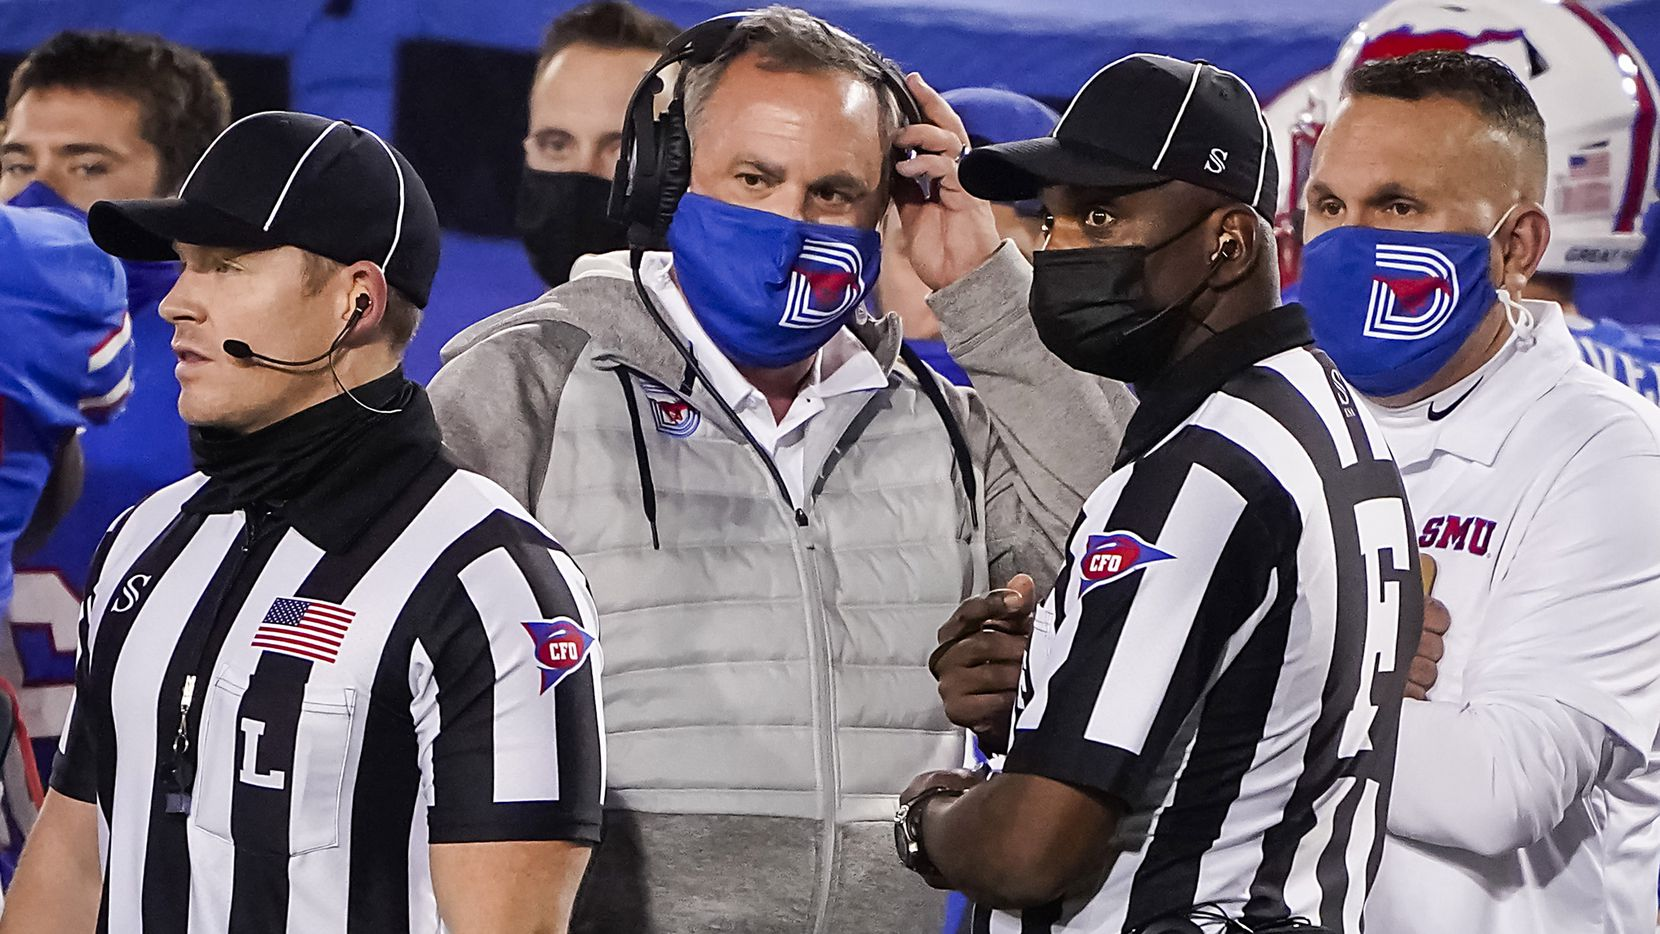 SMU head coach Sonny Dykes talks to officials during the fourth quarter of an NCAA football game against Navy at Ford Stadium on Saturday, Oct. 31, 2020, in Dallas.